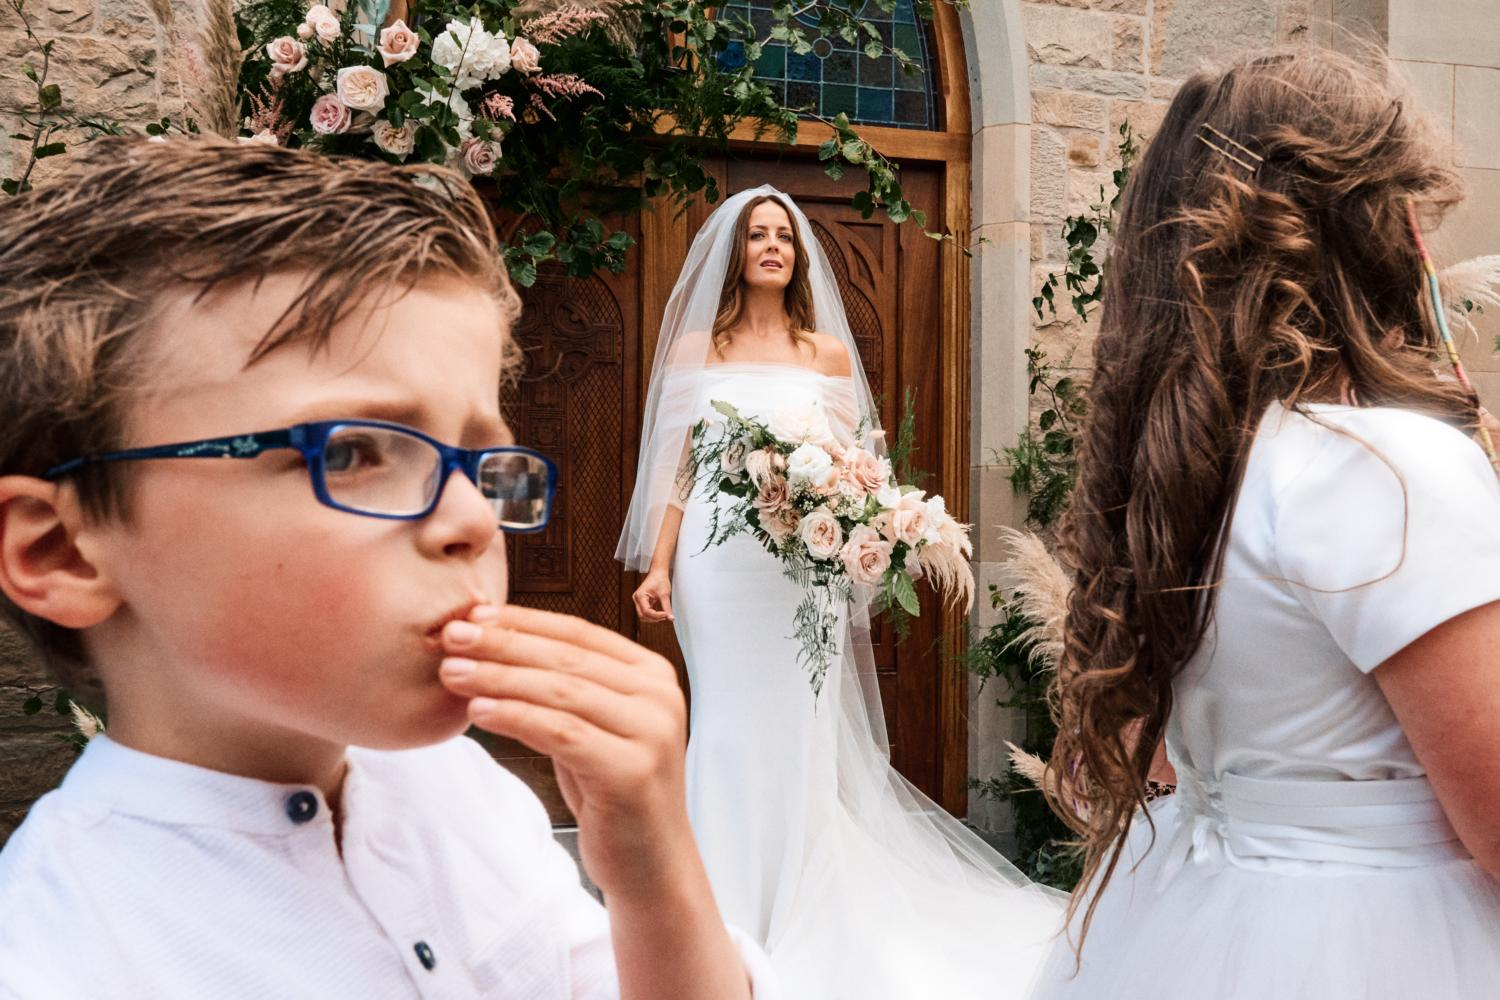 Children eating crisps in front of a bride outside a church